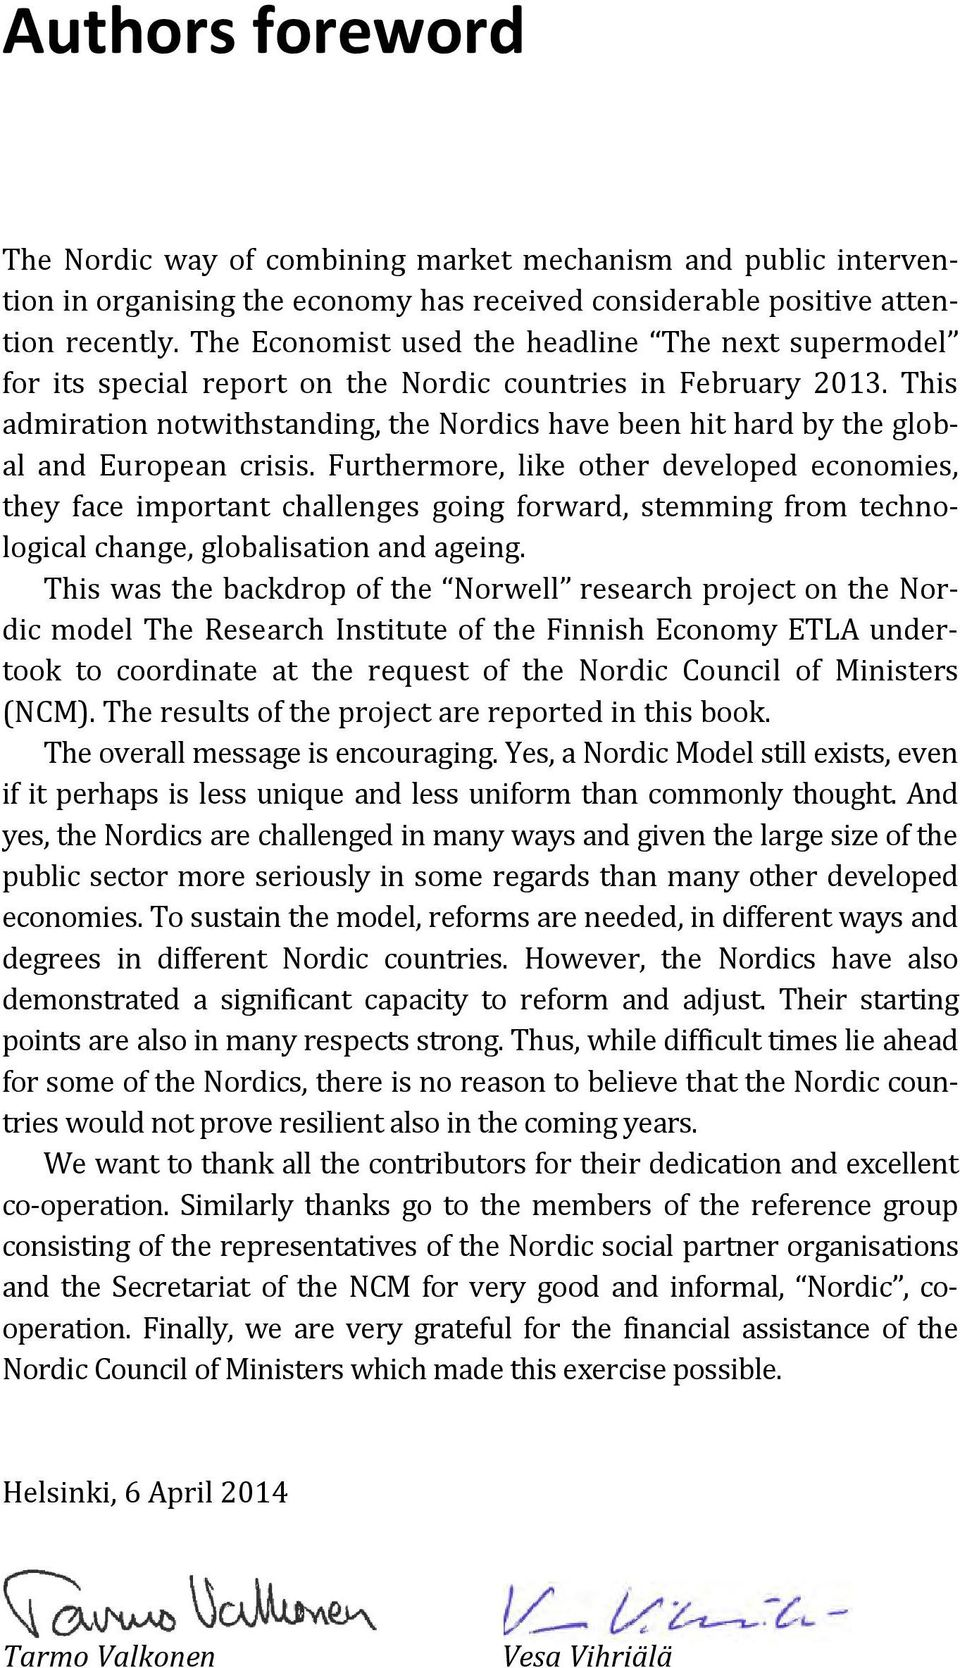 This admiration notwithstanding, the Nordics have been hit hard by the global and European crisis.